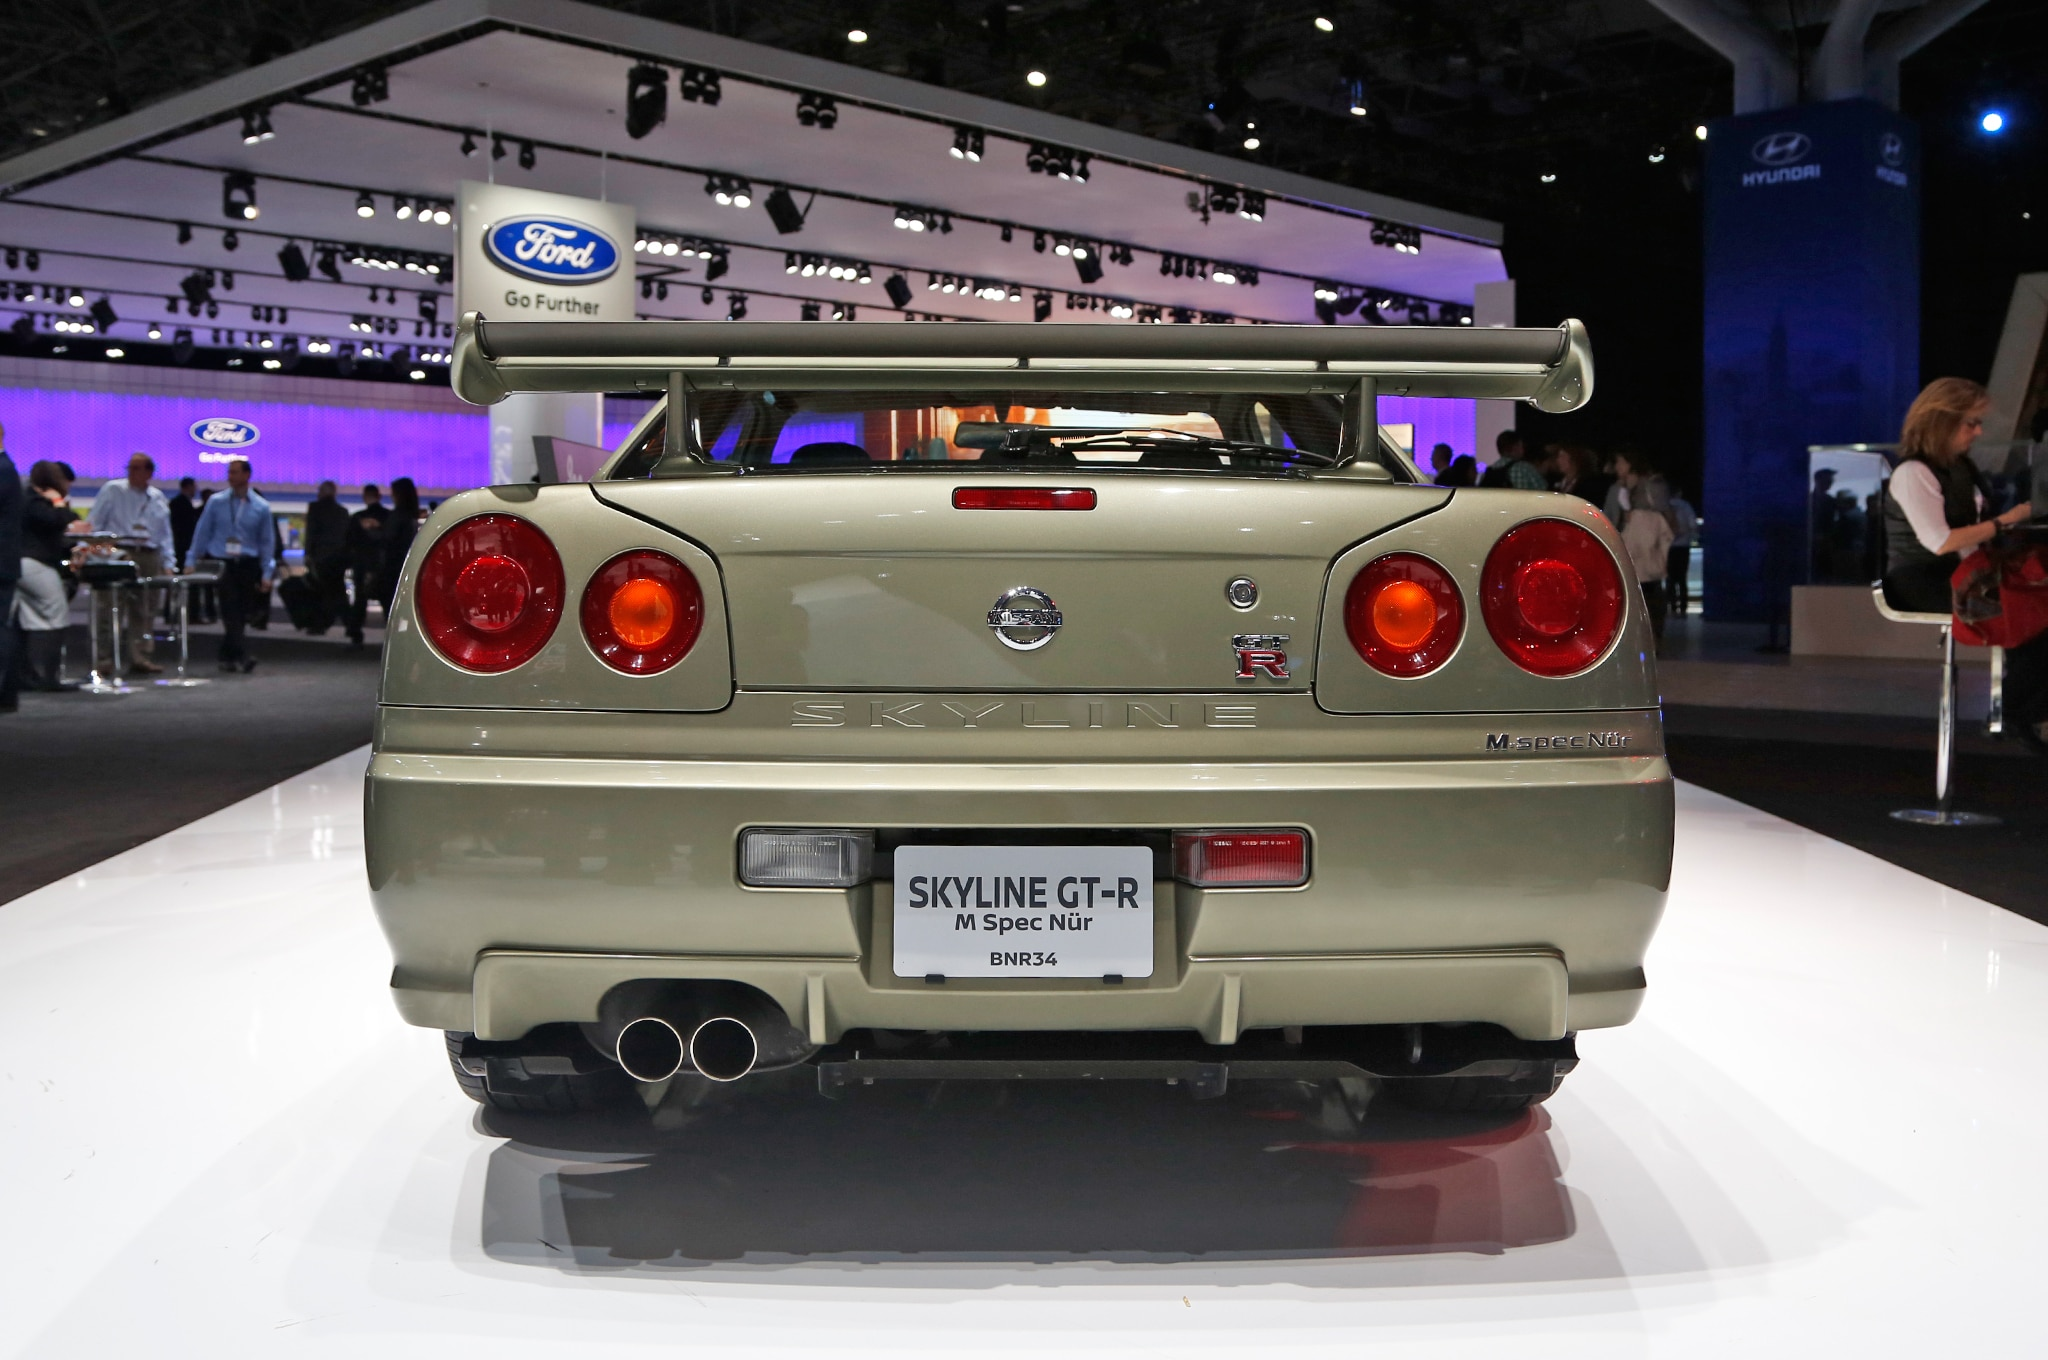 Vintage Nissan Skyline GT-Rs Invade New York Auto Show